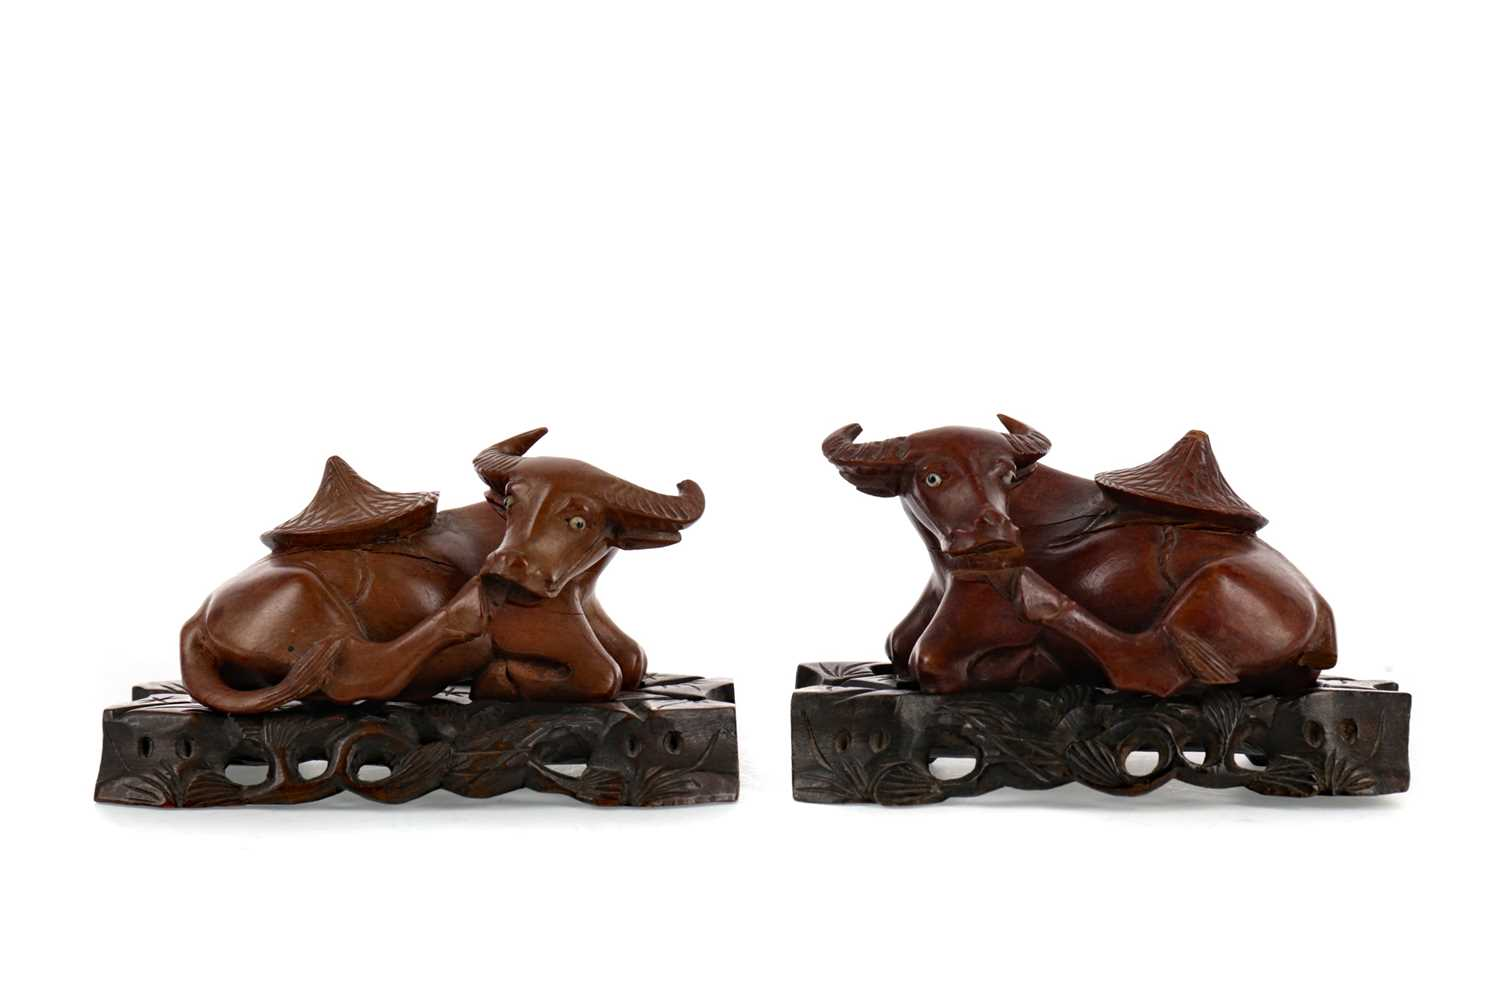 Lot 1700 - A LOT OF TWO 20TH CENTURY CHINESE CARVED WOOD CRAVINGS OF BUFFALO